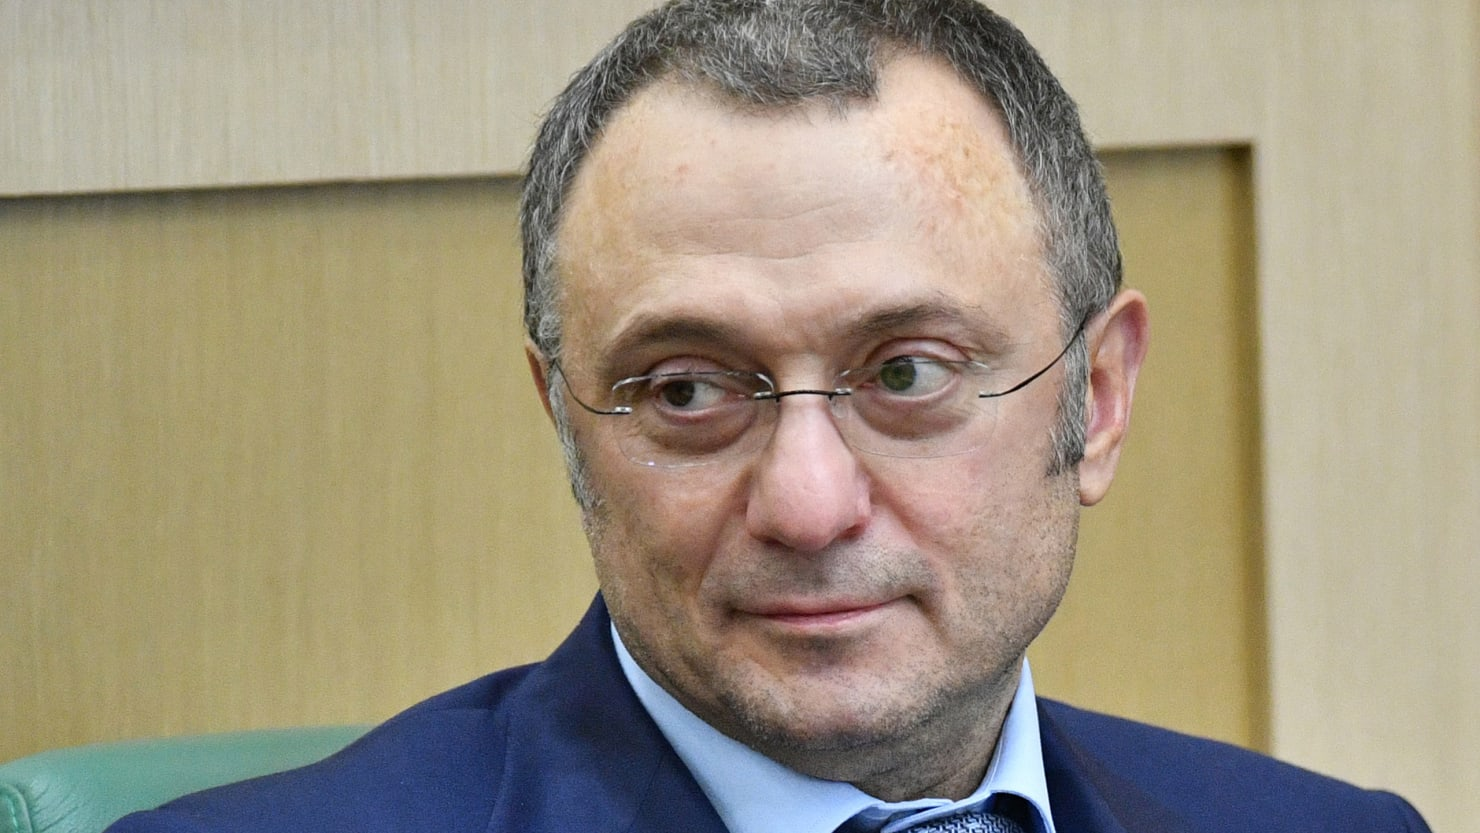 Suleiman Kerimov arrested in France